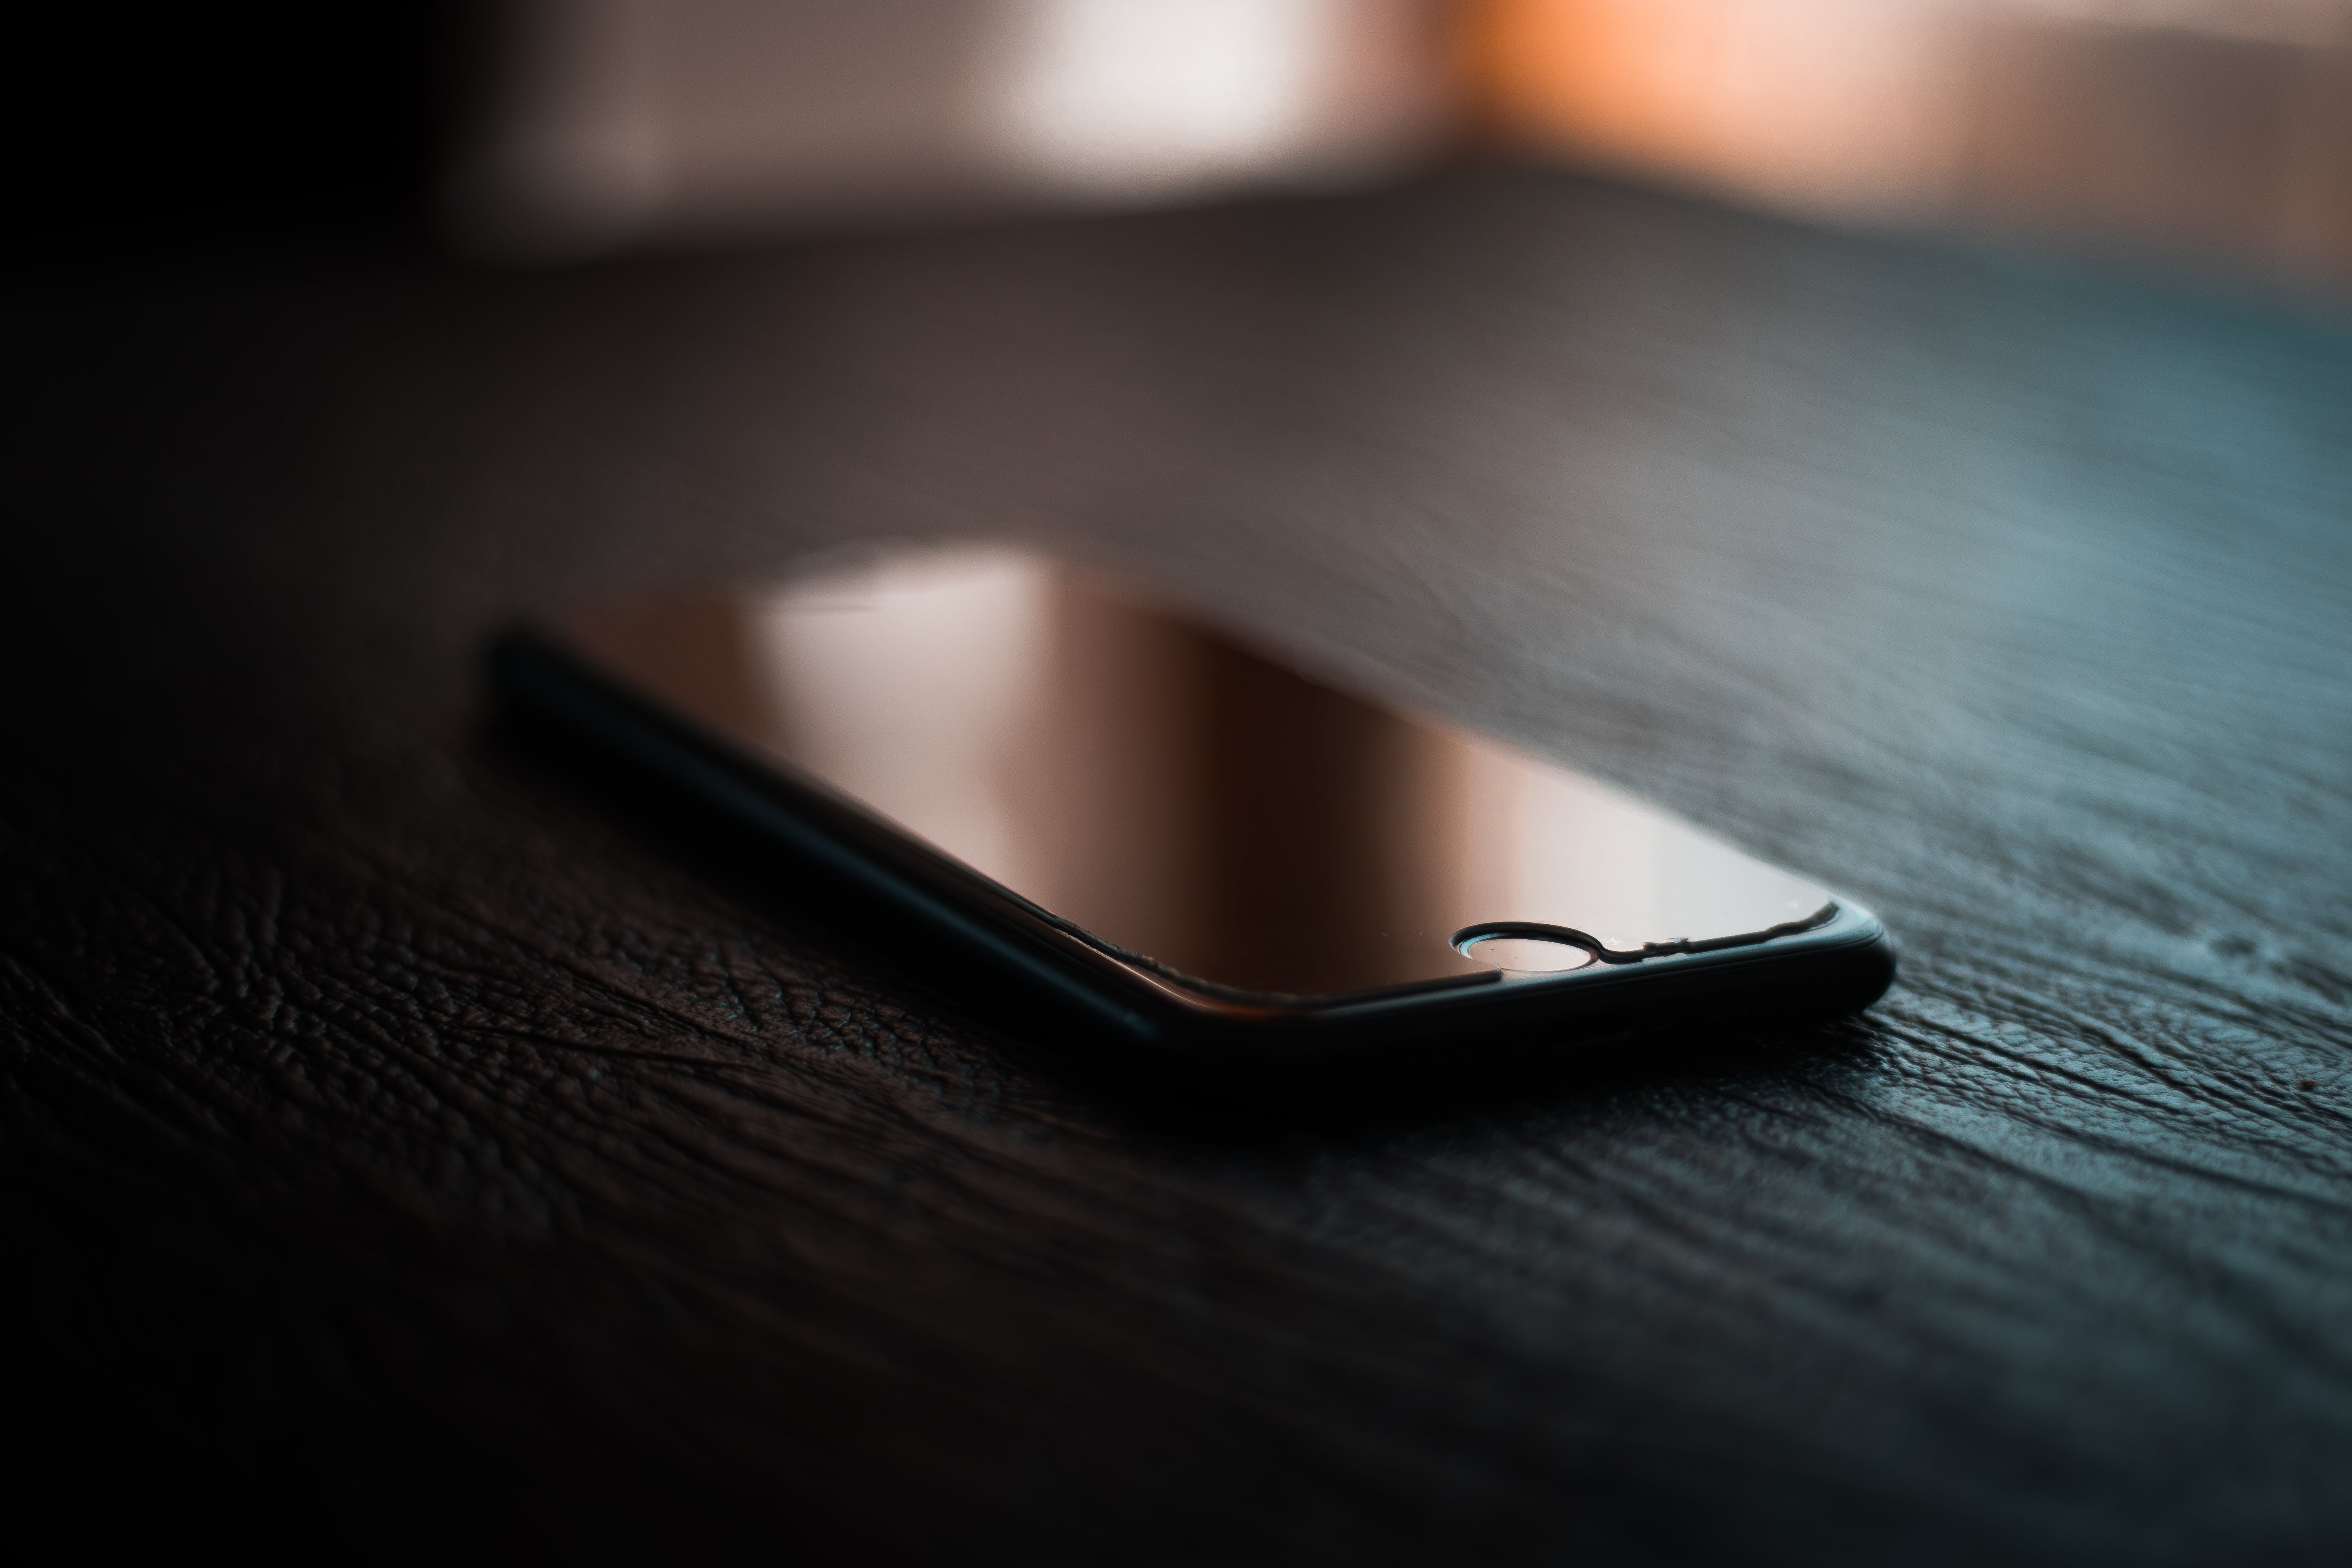 Selective Focus Photography of Black Iphone Turned-off on Table